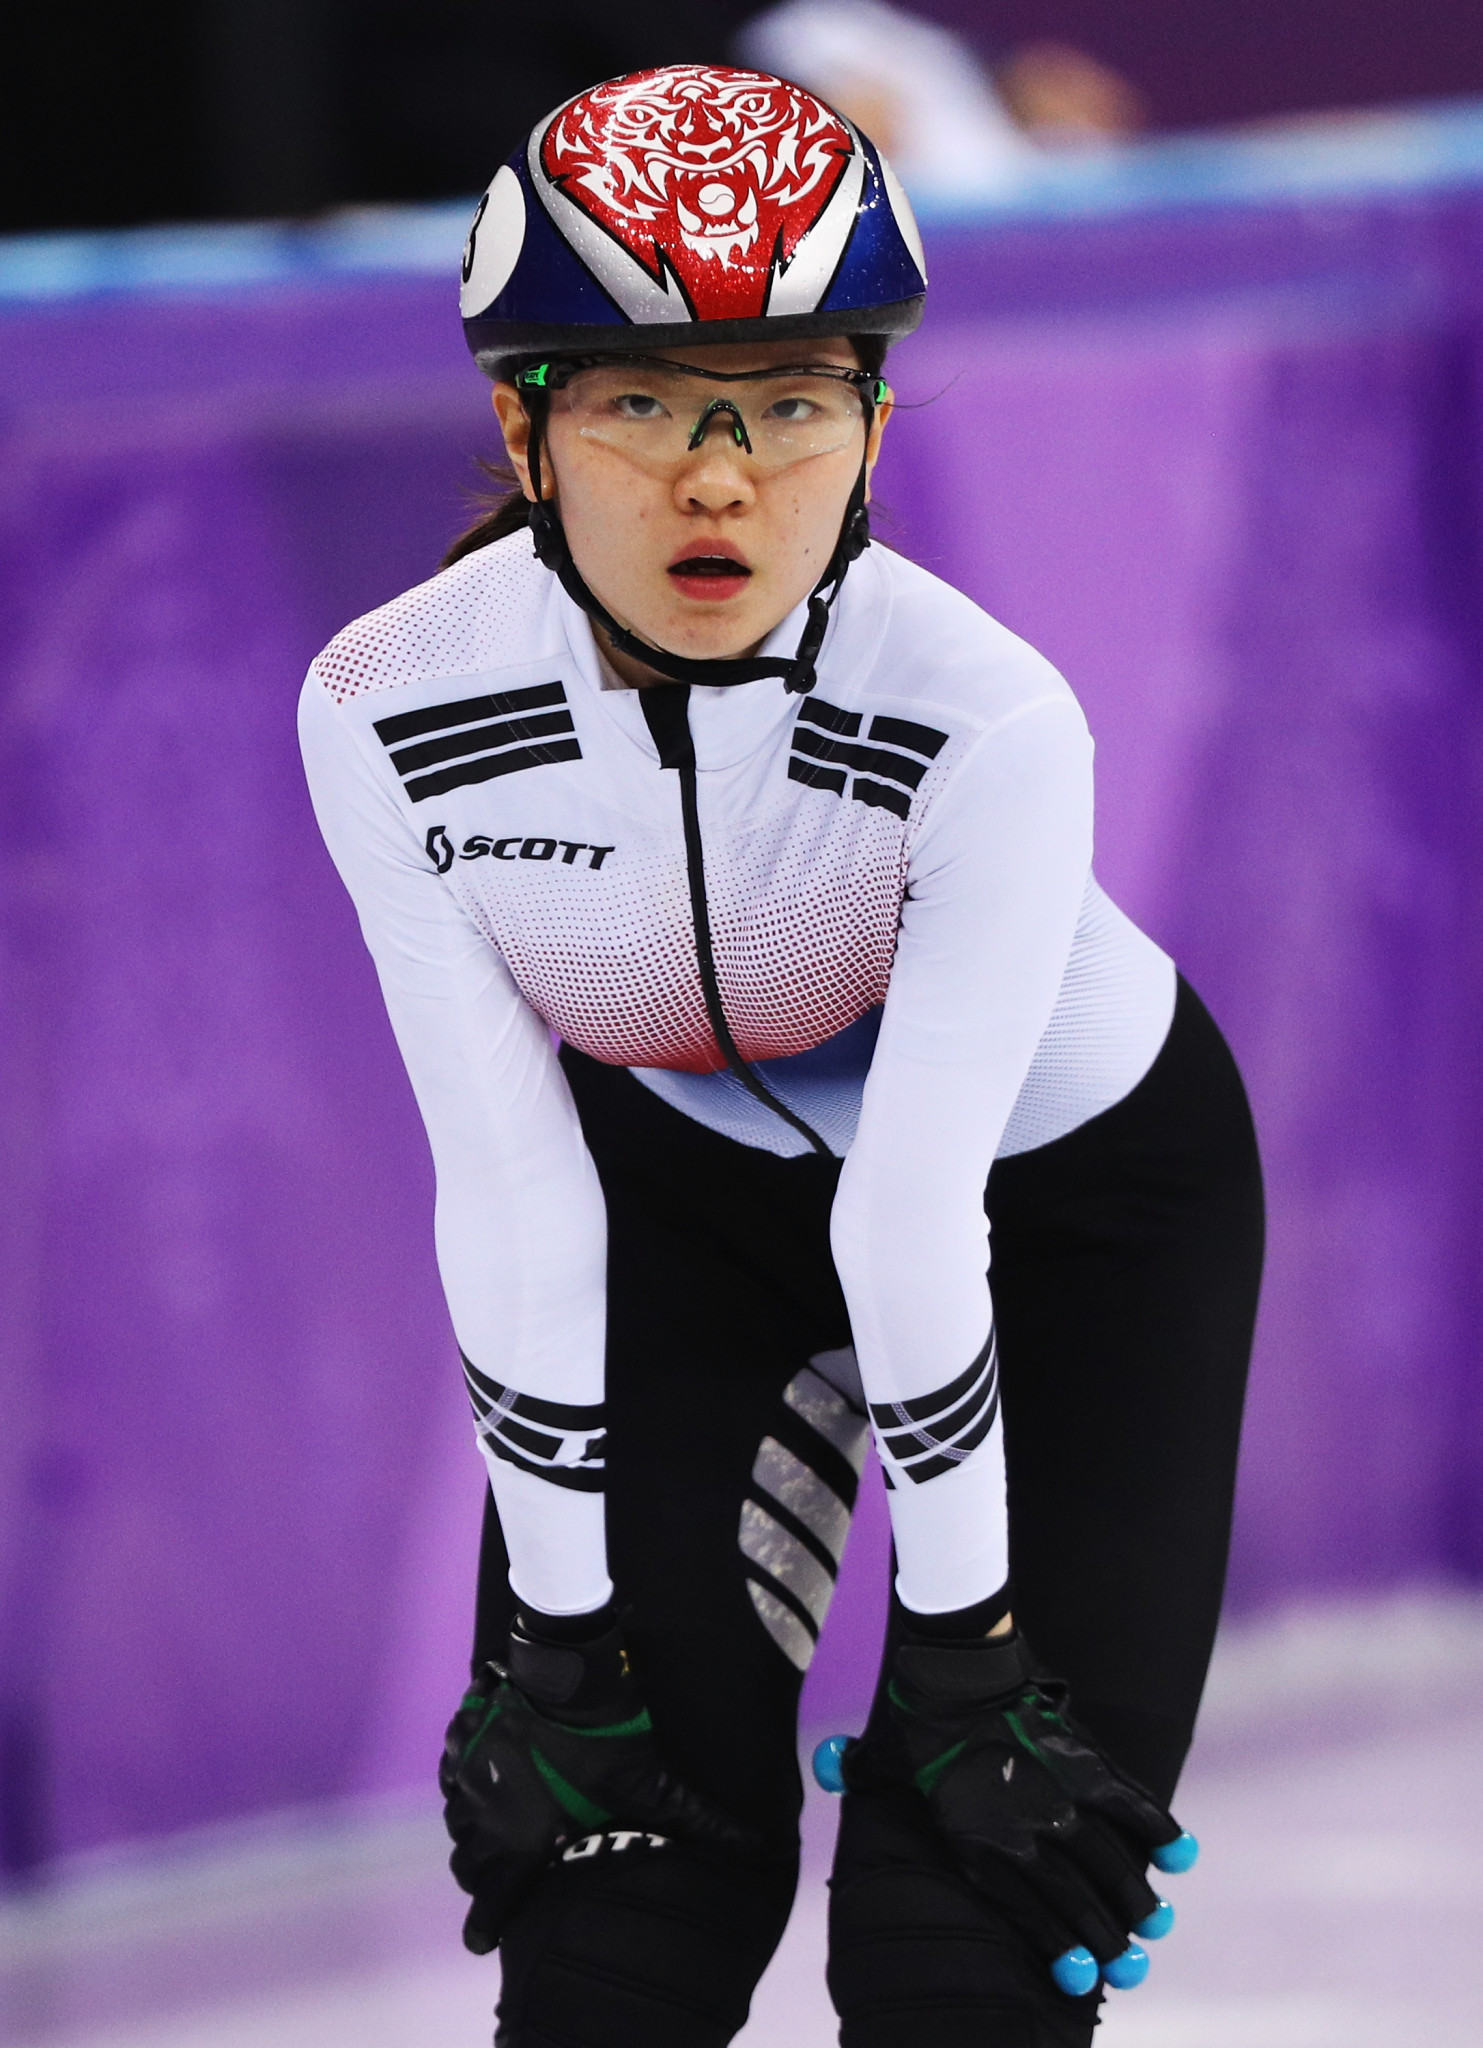 Shim Suk-hee was allegedly hit by Cho Jae-beom in January ©Getty Images